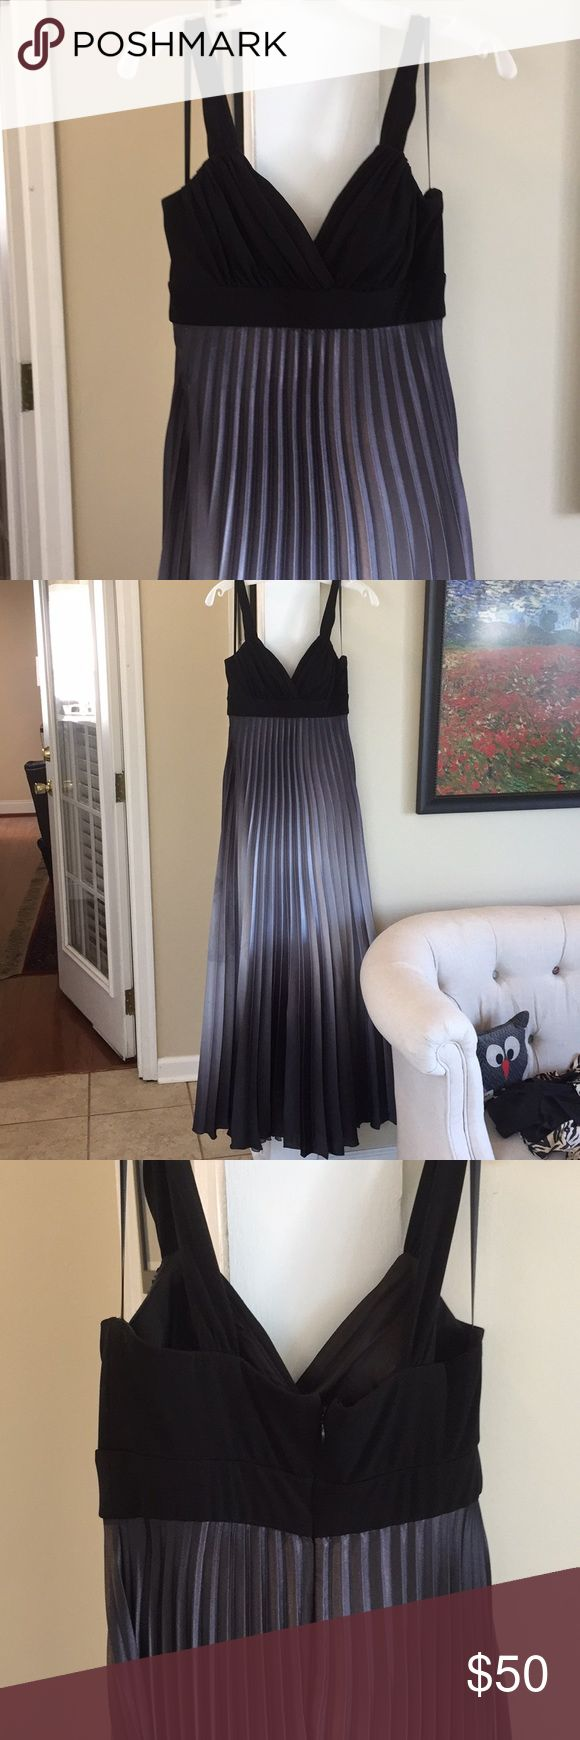 Black and silver ombré gown Elegant gown with empire waist and pleated skirt with black to silver ombré effect. Slightly wider straps. Perfect for prom or formal event. Small amount of discoloration on the right side of the skirt shown in pictures. Dresses Prom